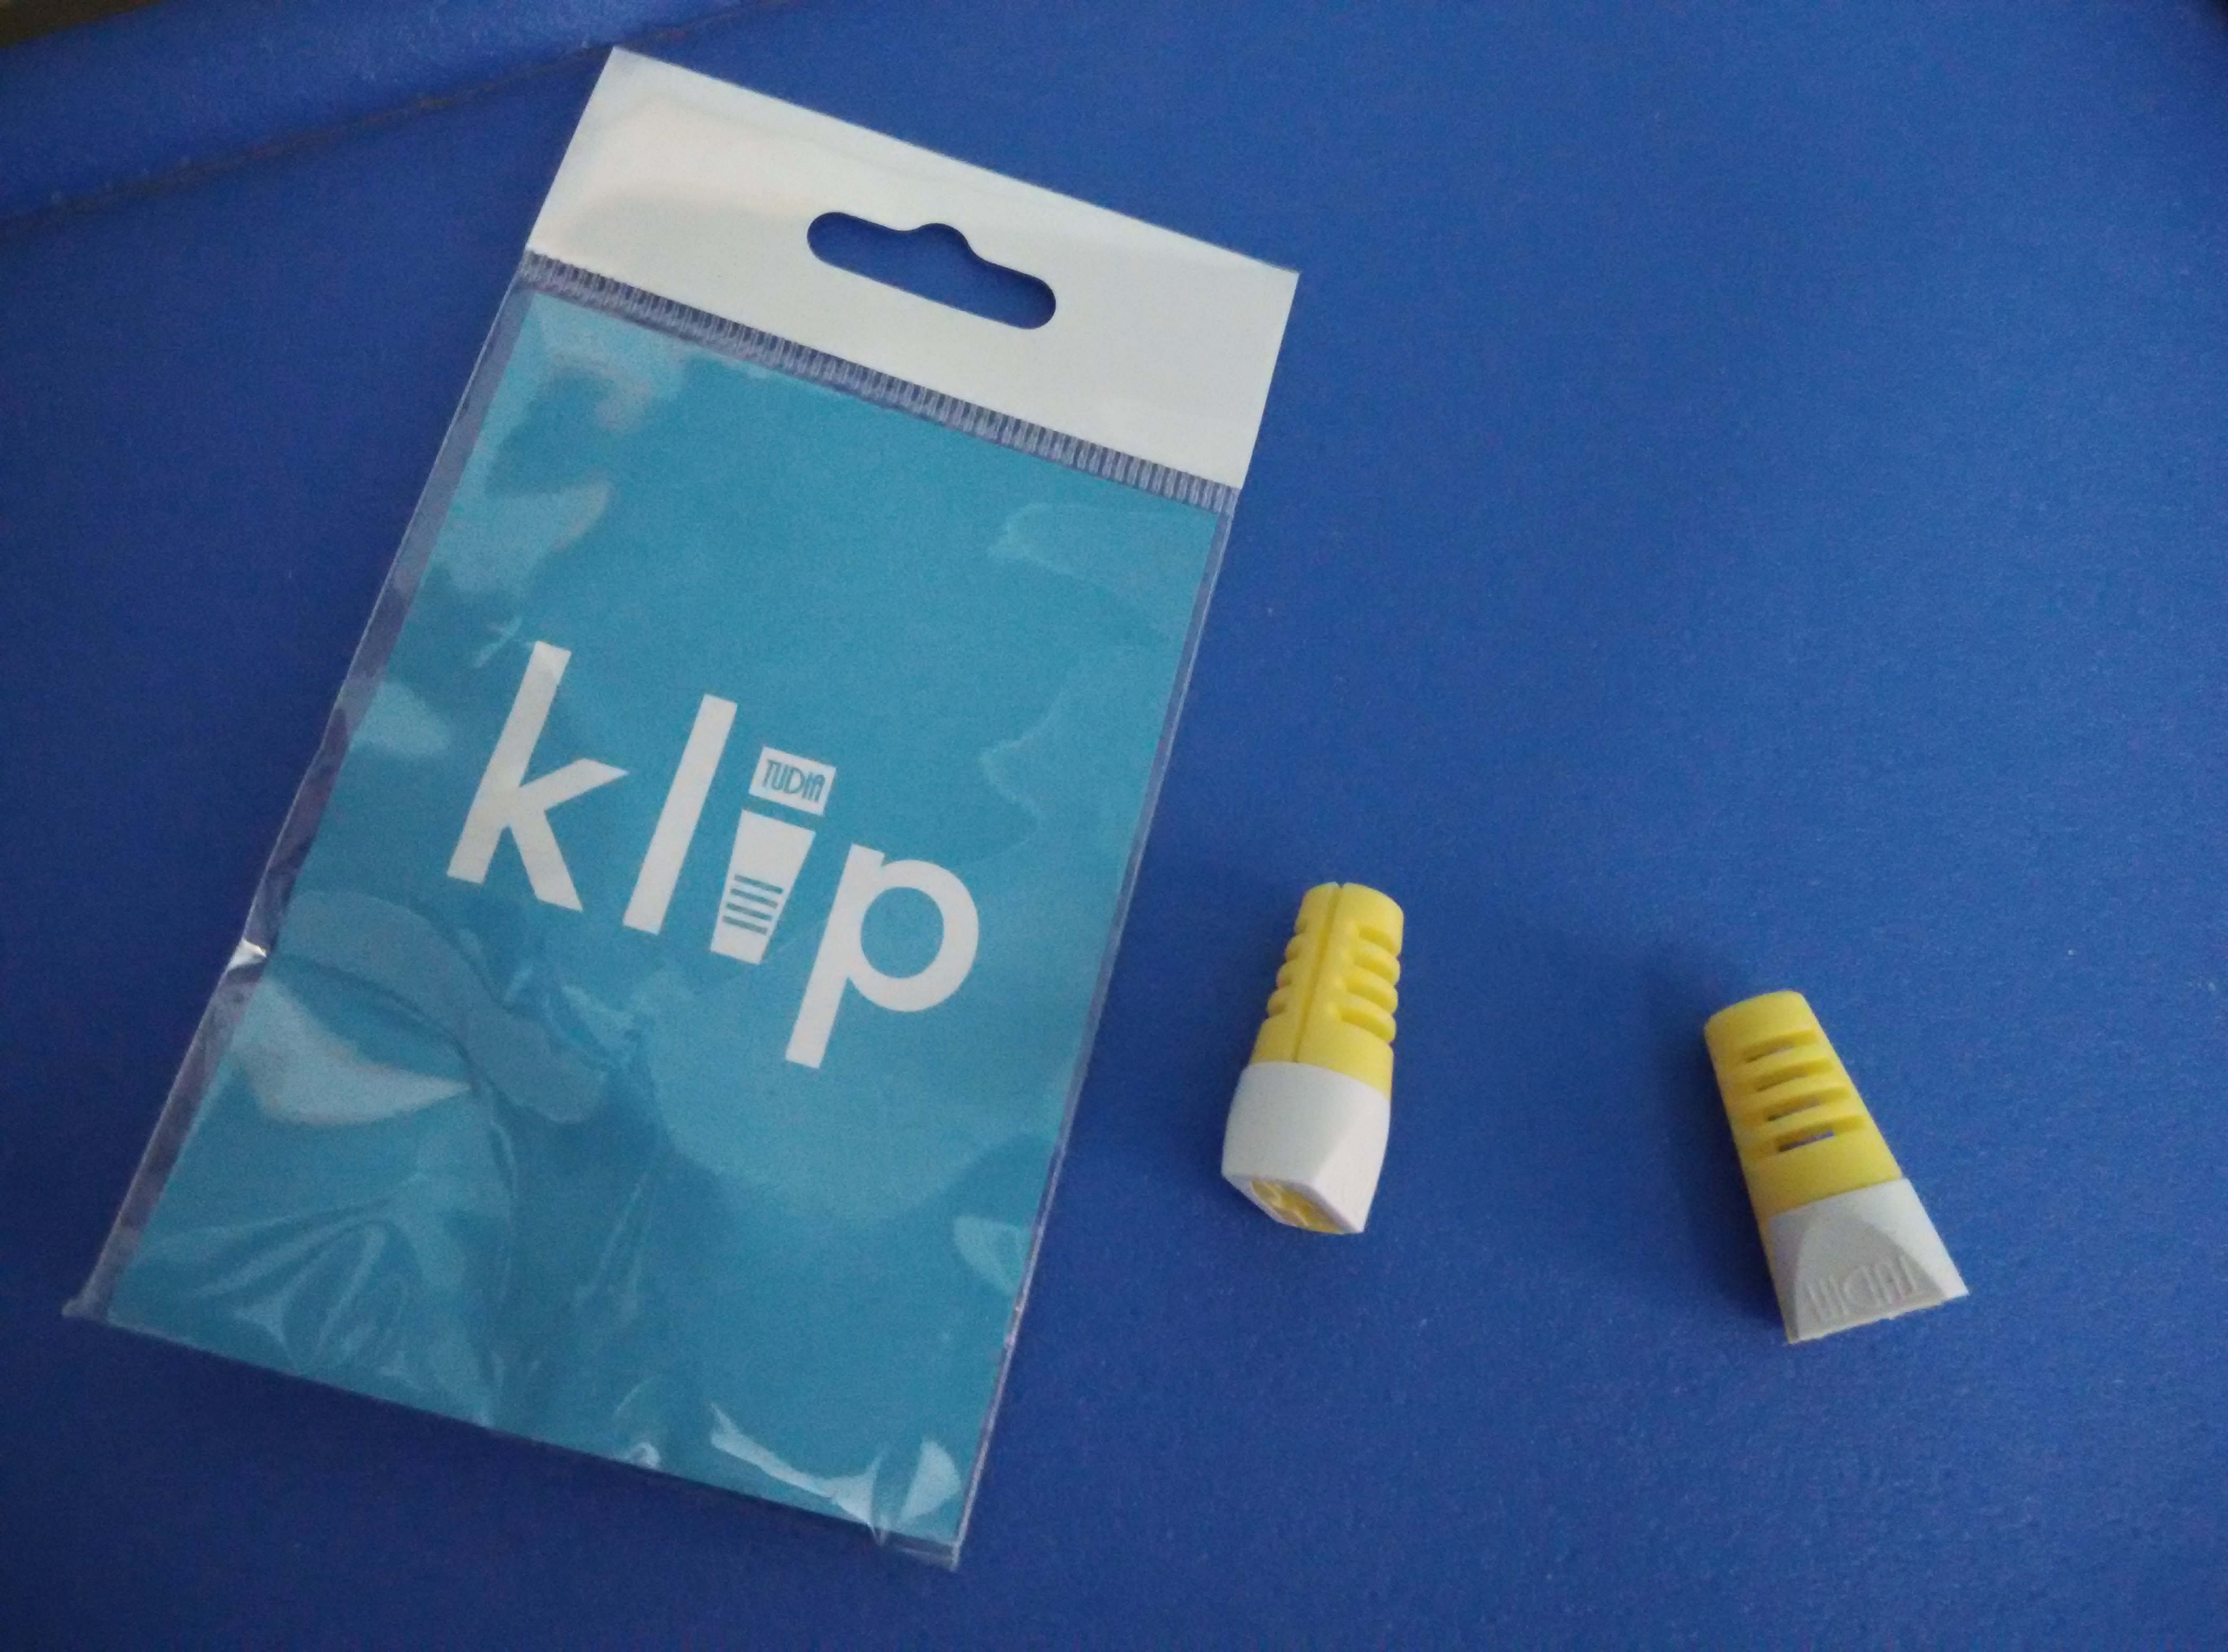 TUDIA Klip Review: An Excellent way to protect your Apple charging cable